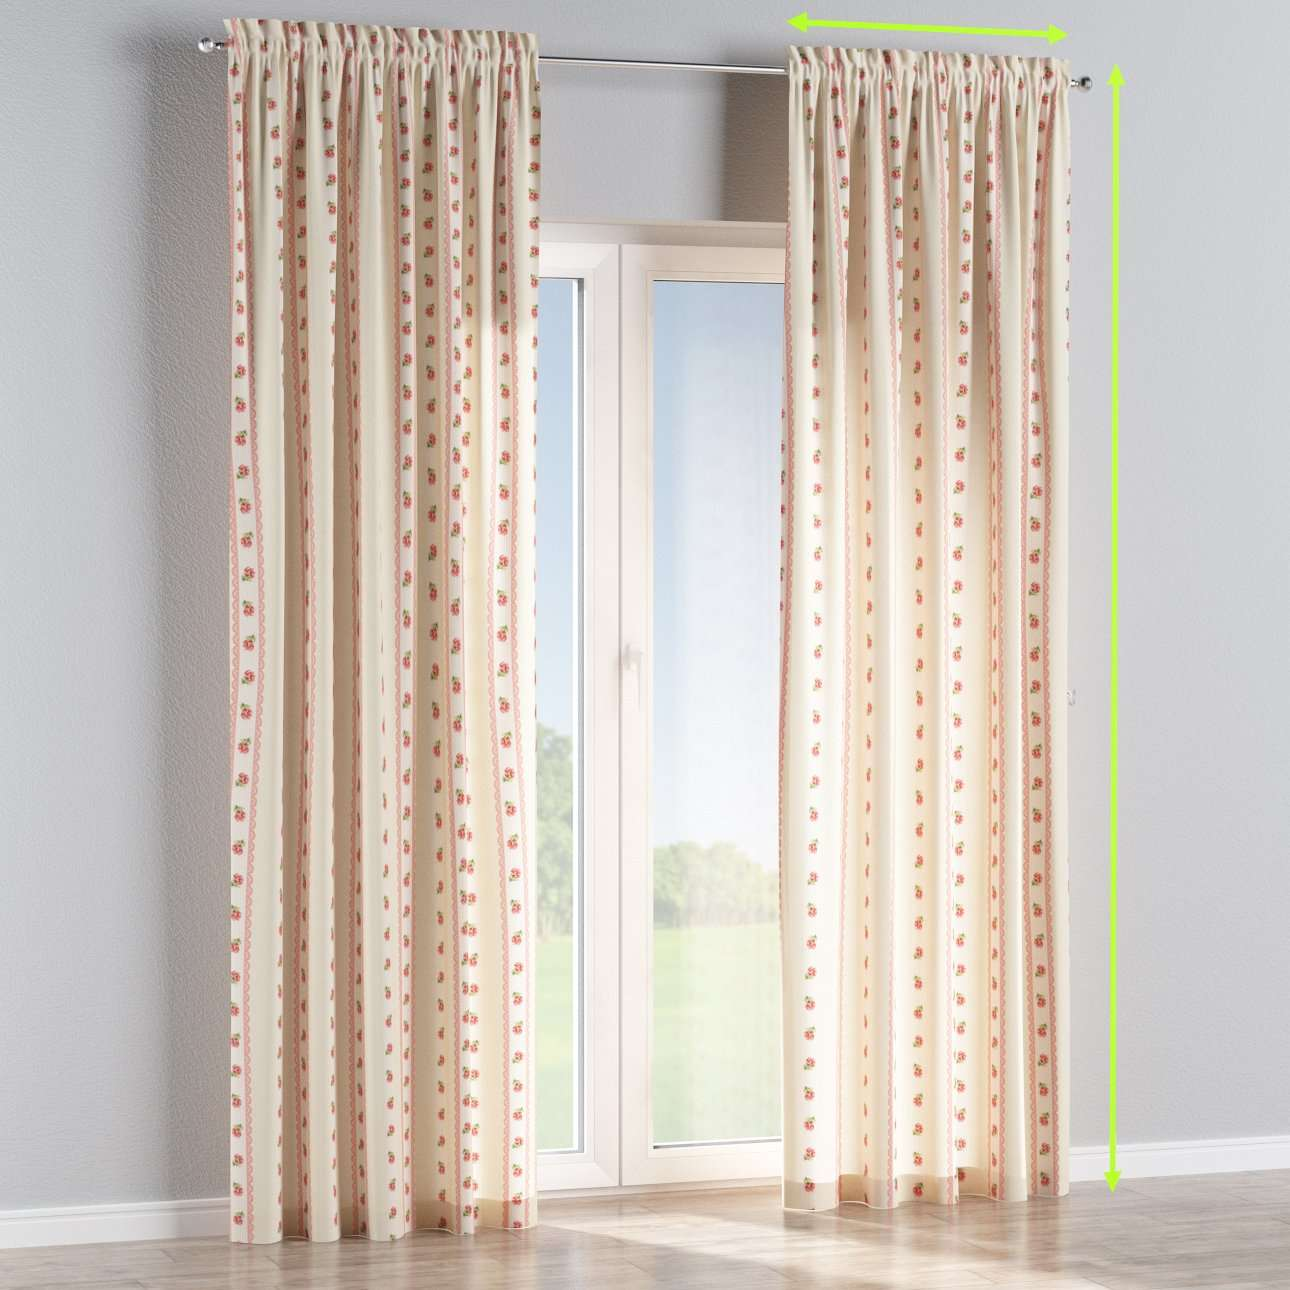 Slot and frill curtains in collection Ashley, fabric: 137-48